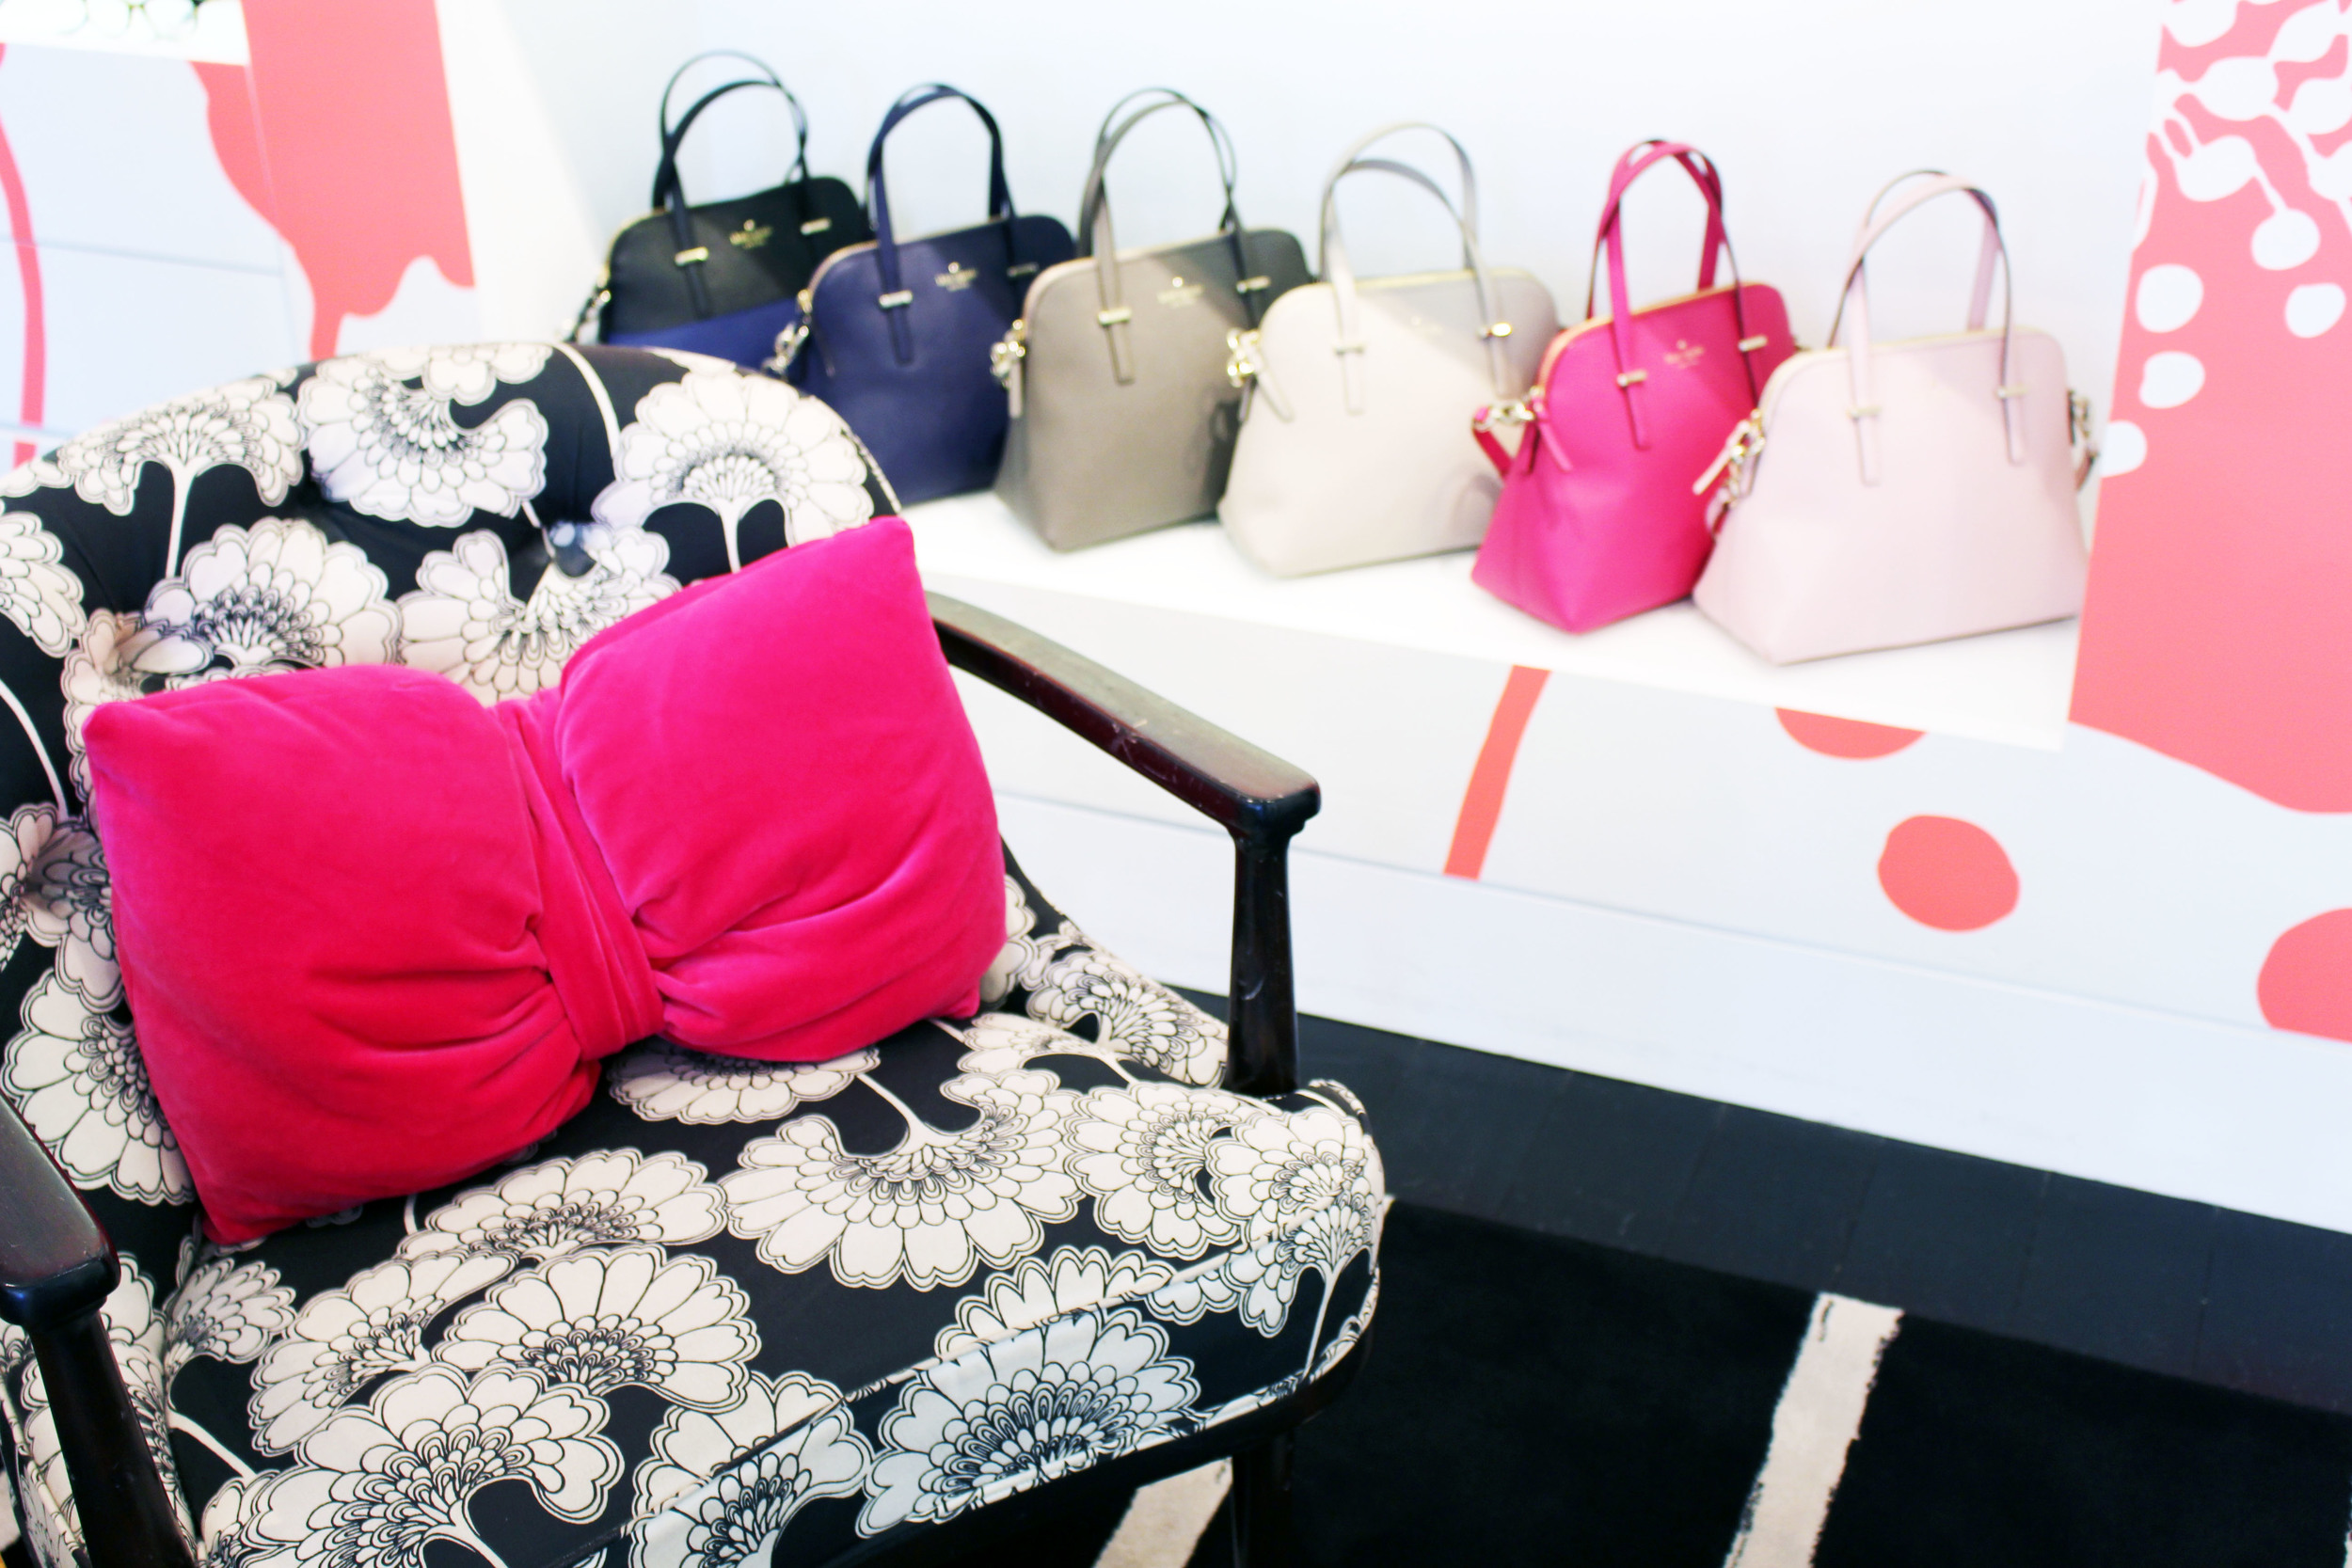 Kate Spade Designer Chair and Purses - Photo Shoot La Jolla